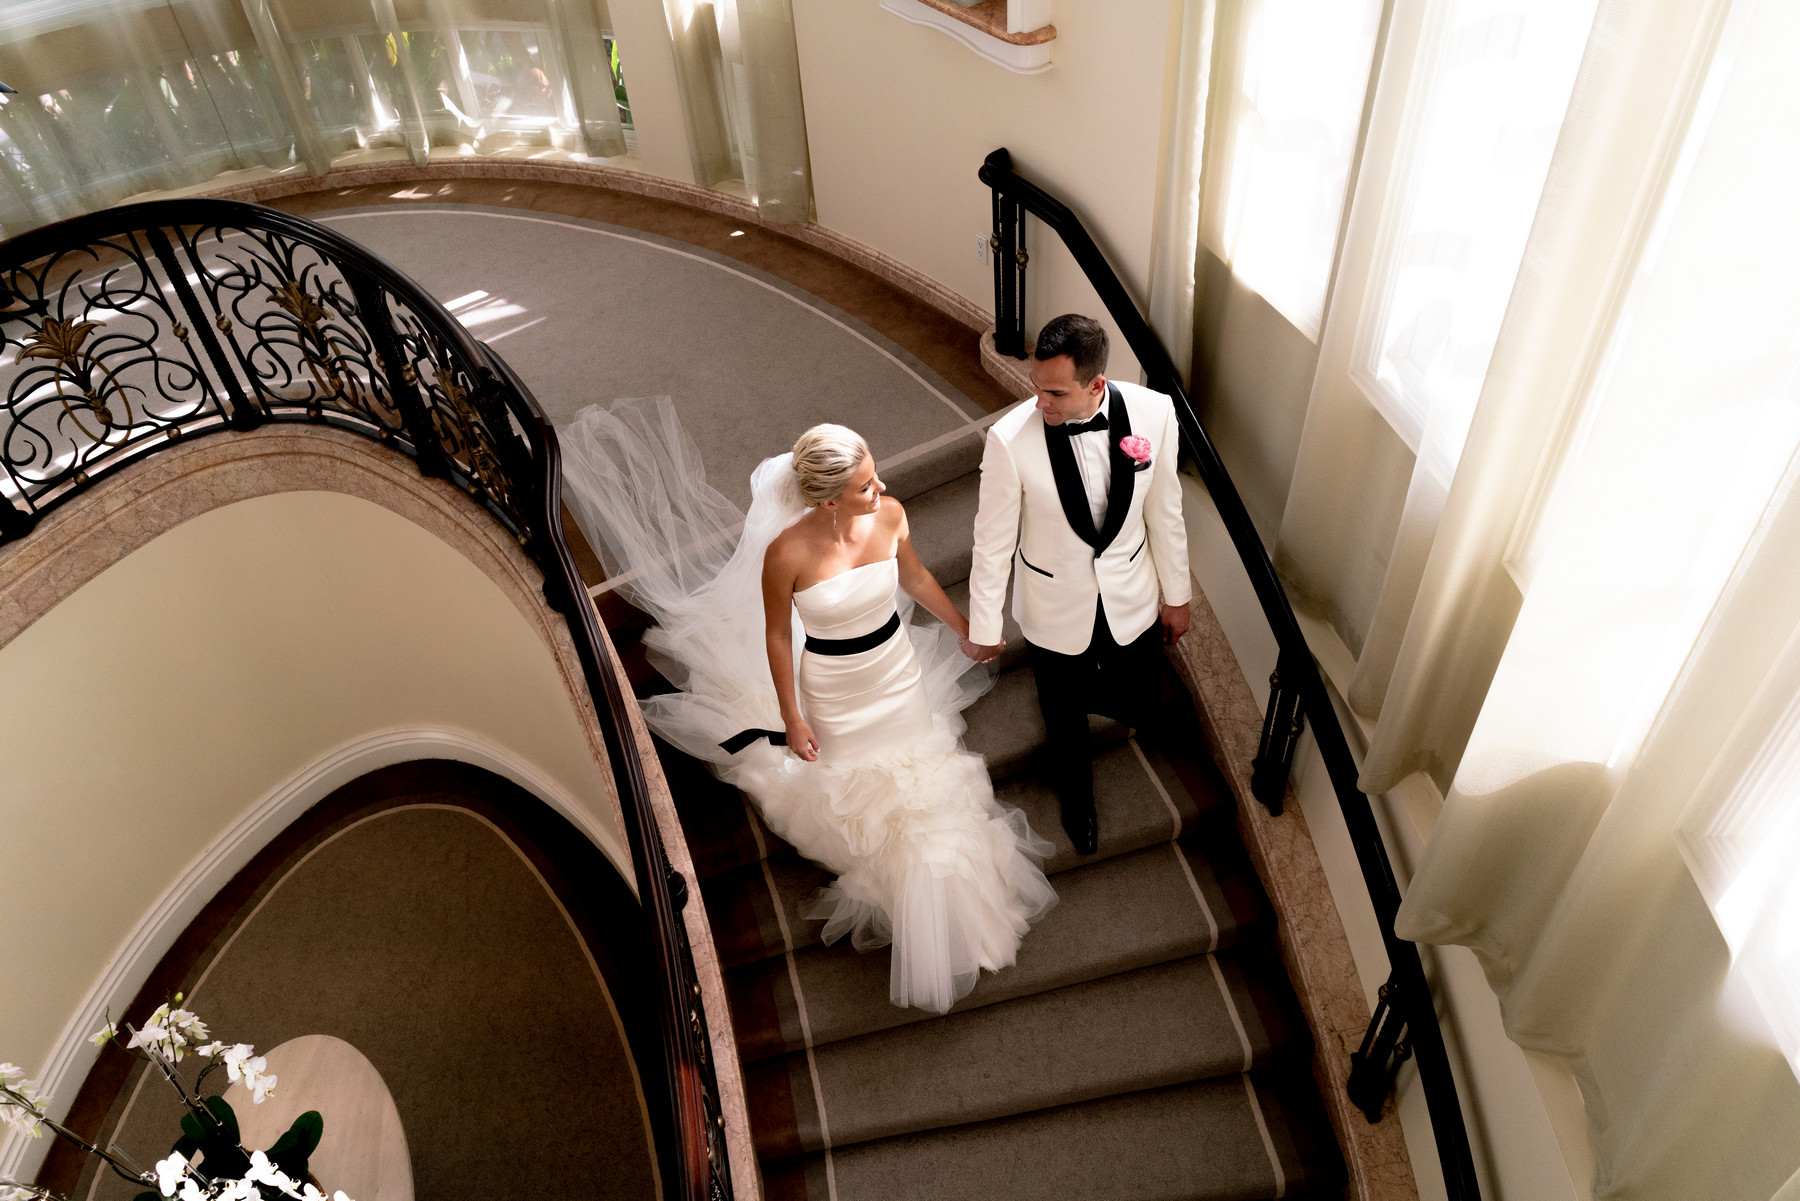 Bride and groom descending stairs in column dress with ruffled tulle skirt - photo by John and Joseph